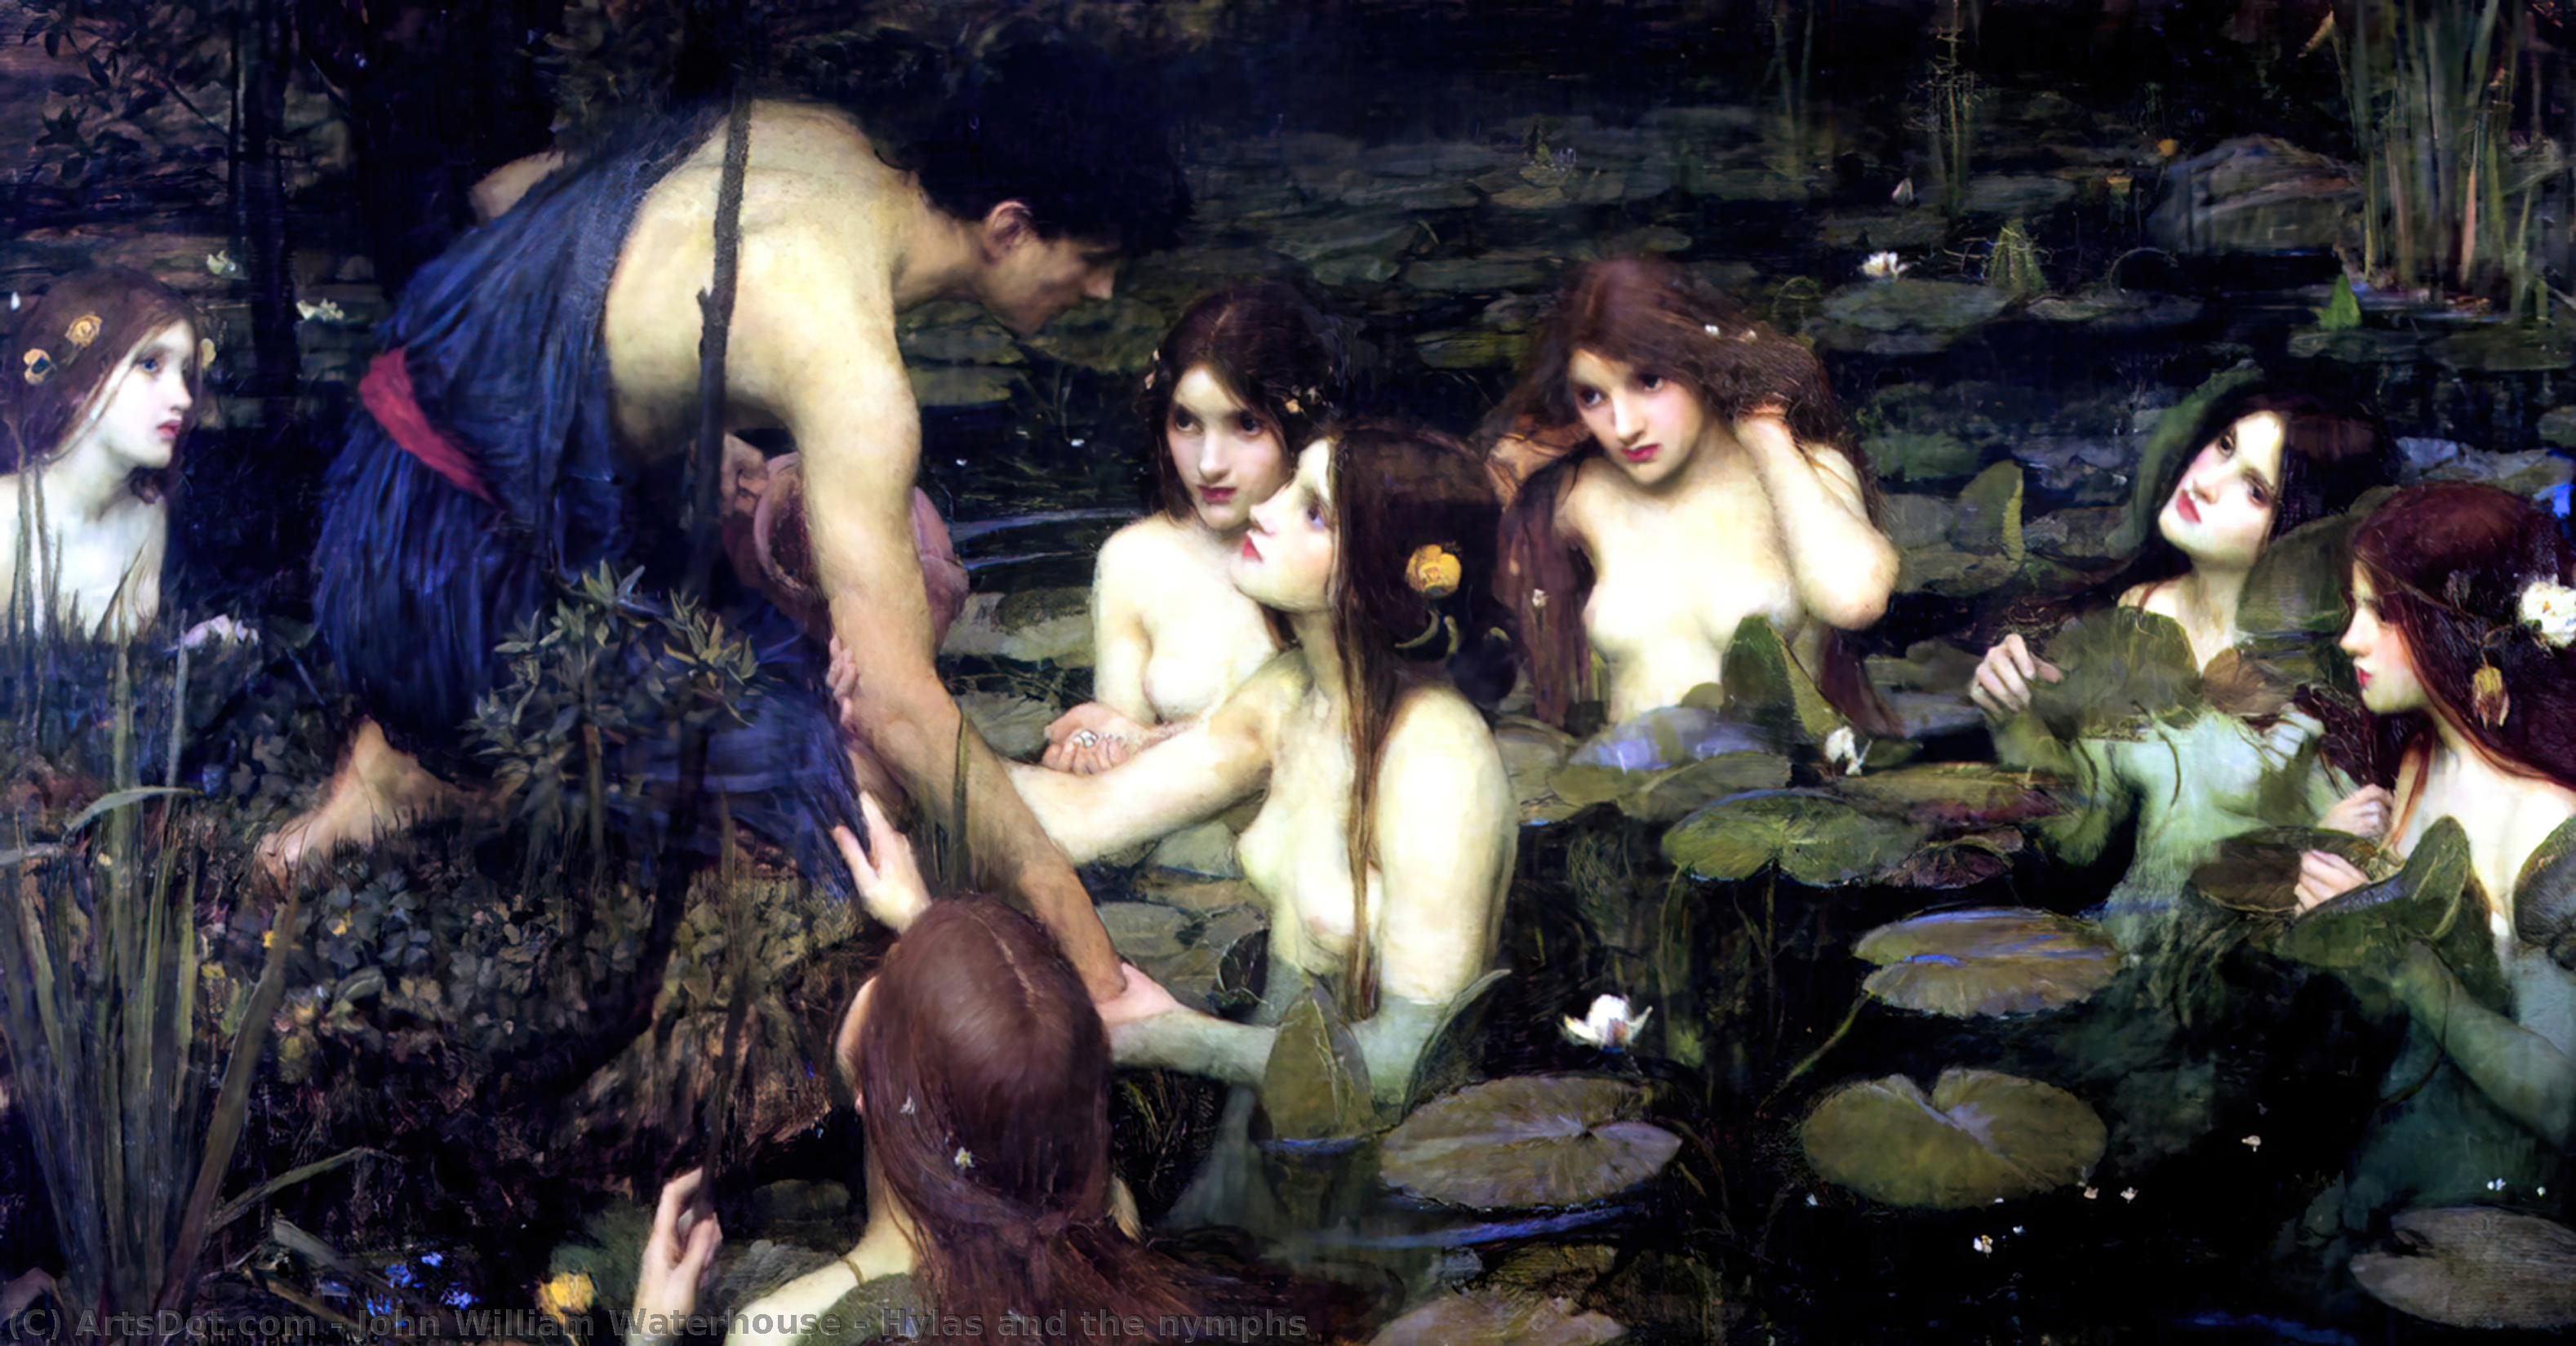 Hylas und die nymphen, 1896 von John William Waterhouse (1849-1917, Italy) | Museumsqualität Prints John William Waterhouse | ArtsDot.com